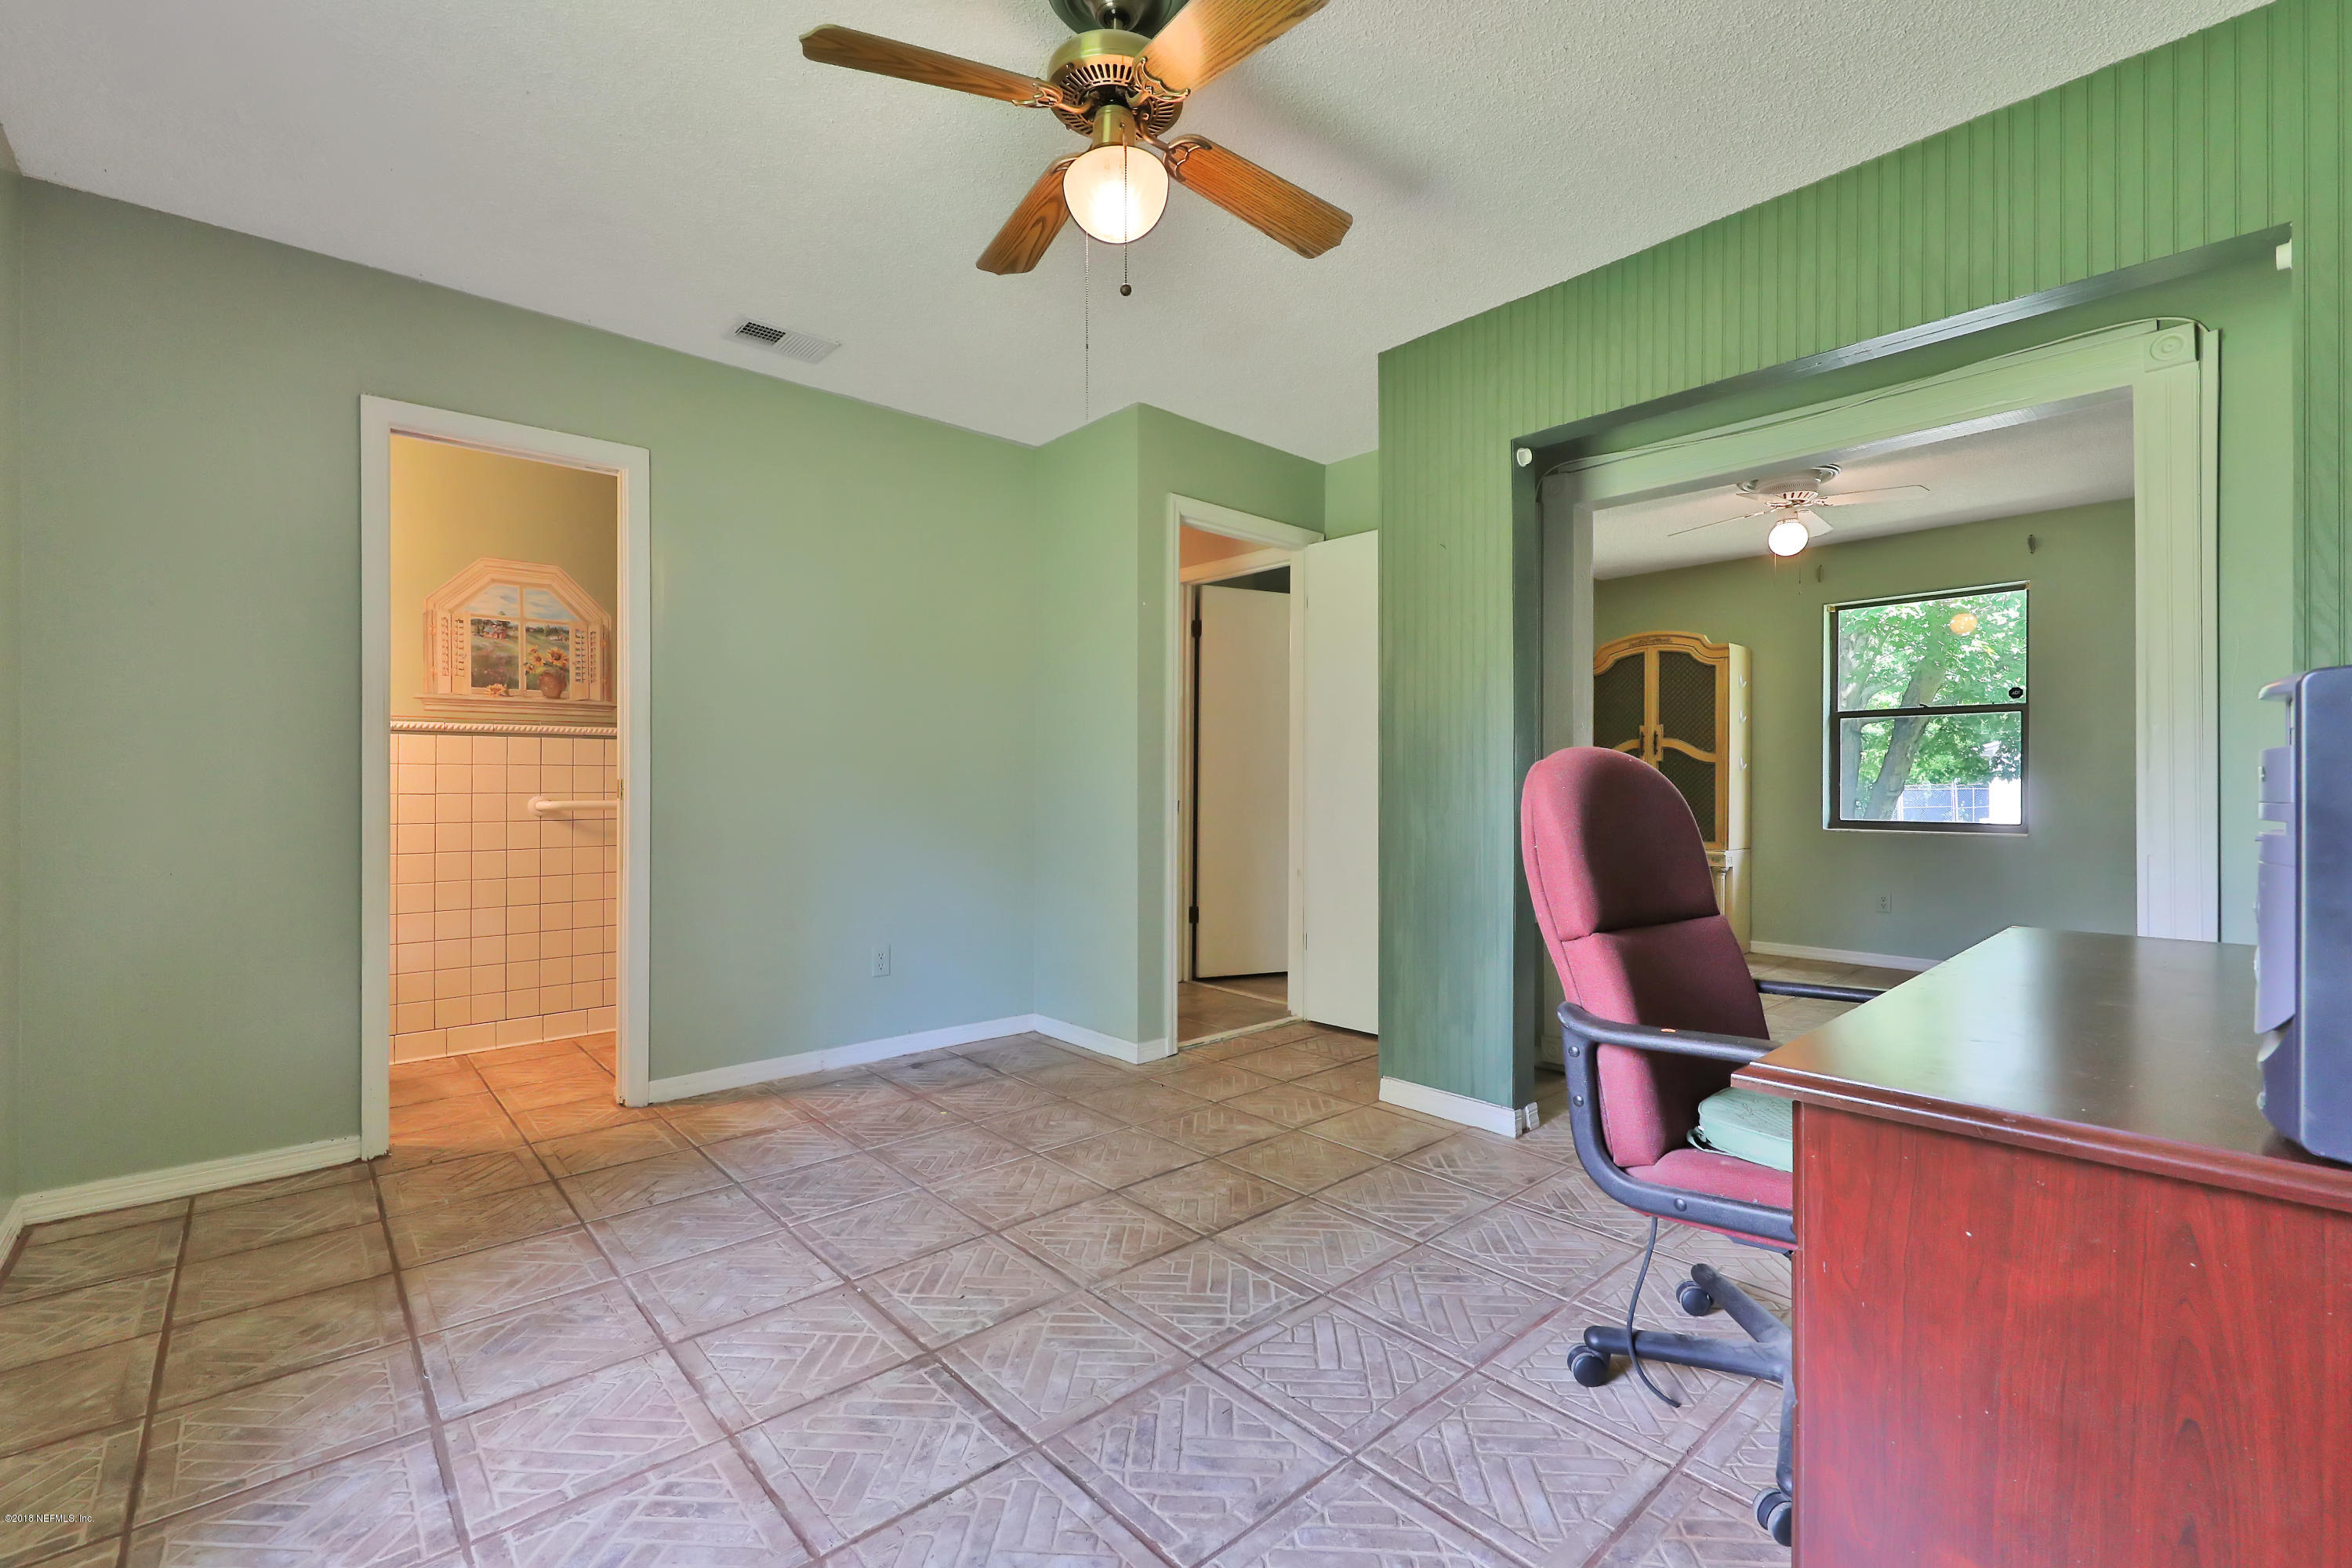 493 SALLY, GREEN COVE SPRINGS, FLORIDA 32043, 3 Bedrooms Bedrooms, ,1 BathroomBathrooms,Residential - single family,For sale,SALLY,941997